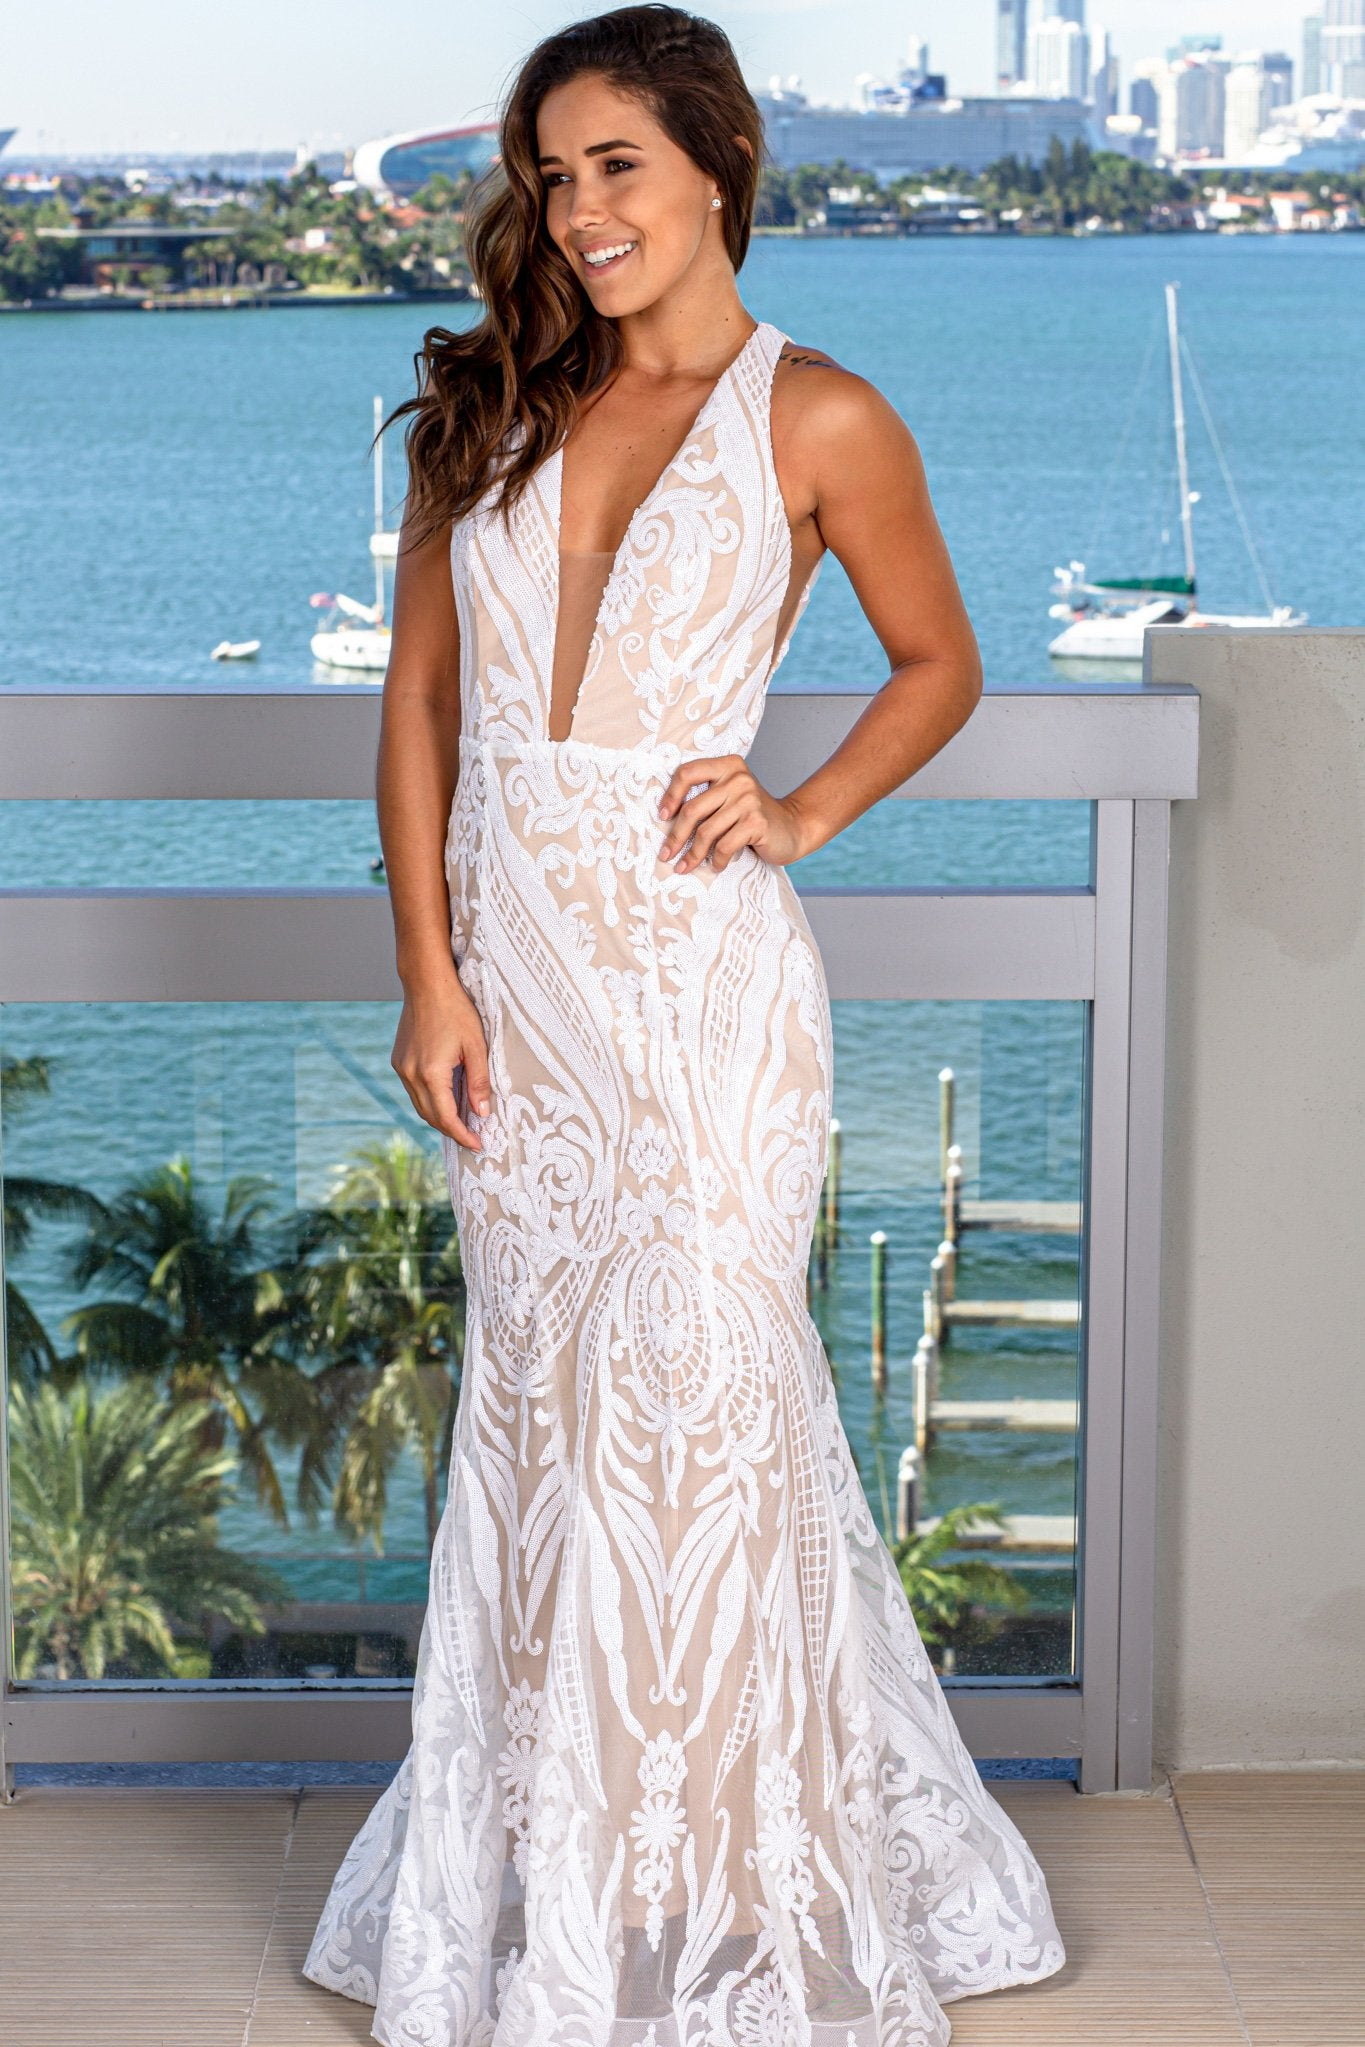 White and Beige Maxi Dress with Sequin Detail